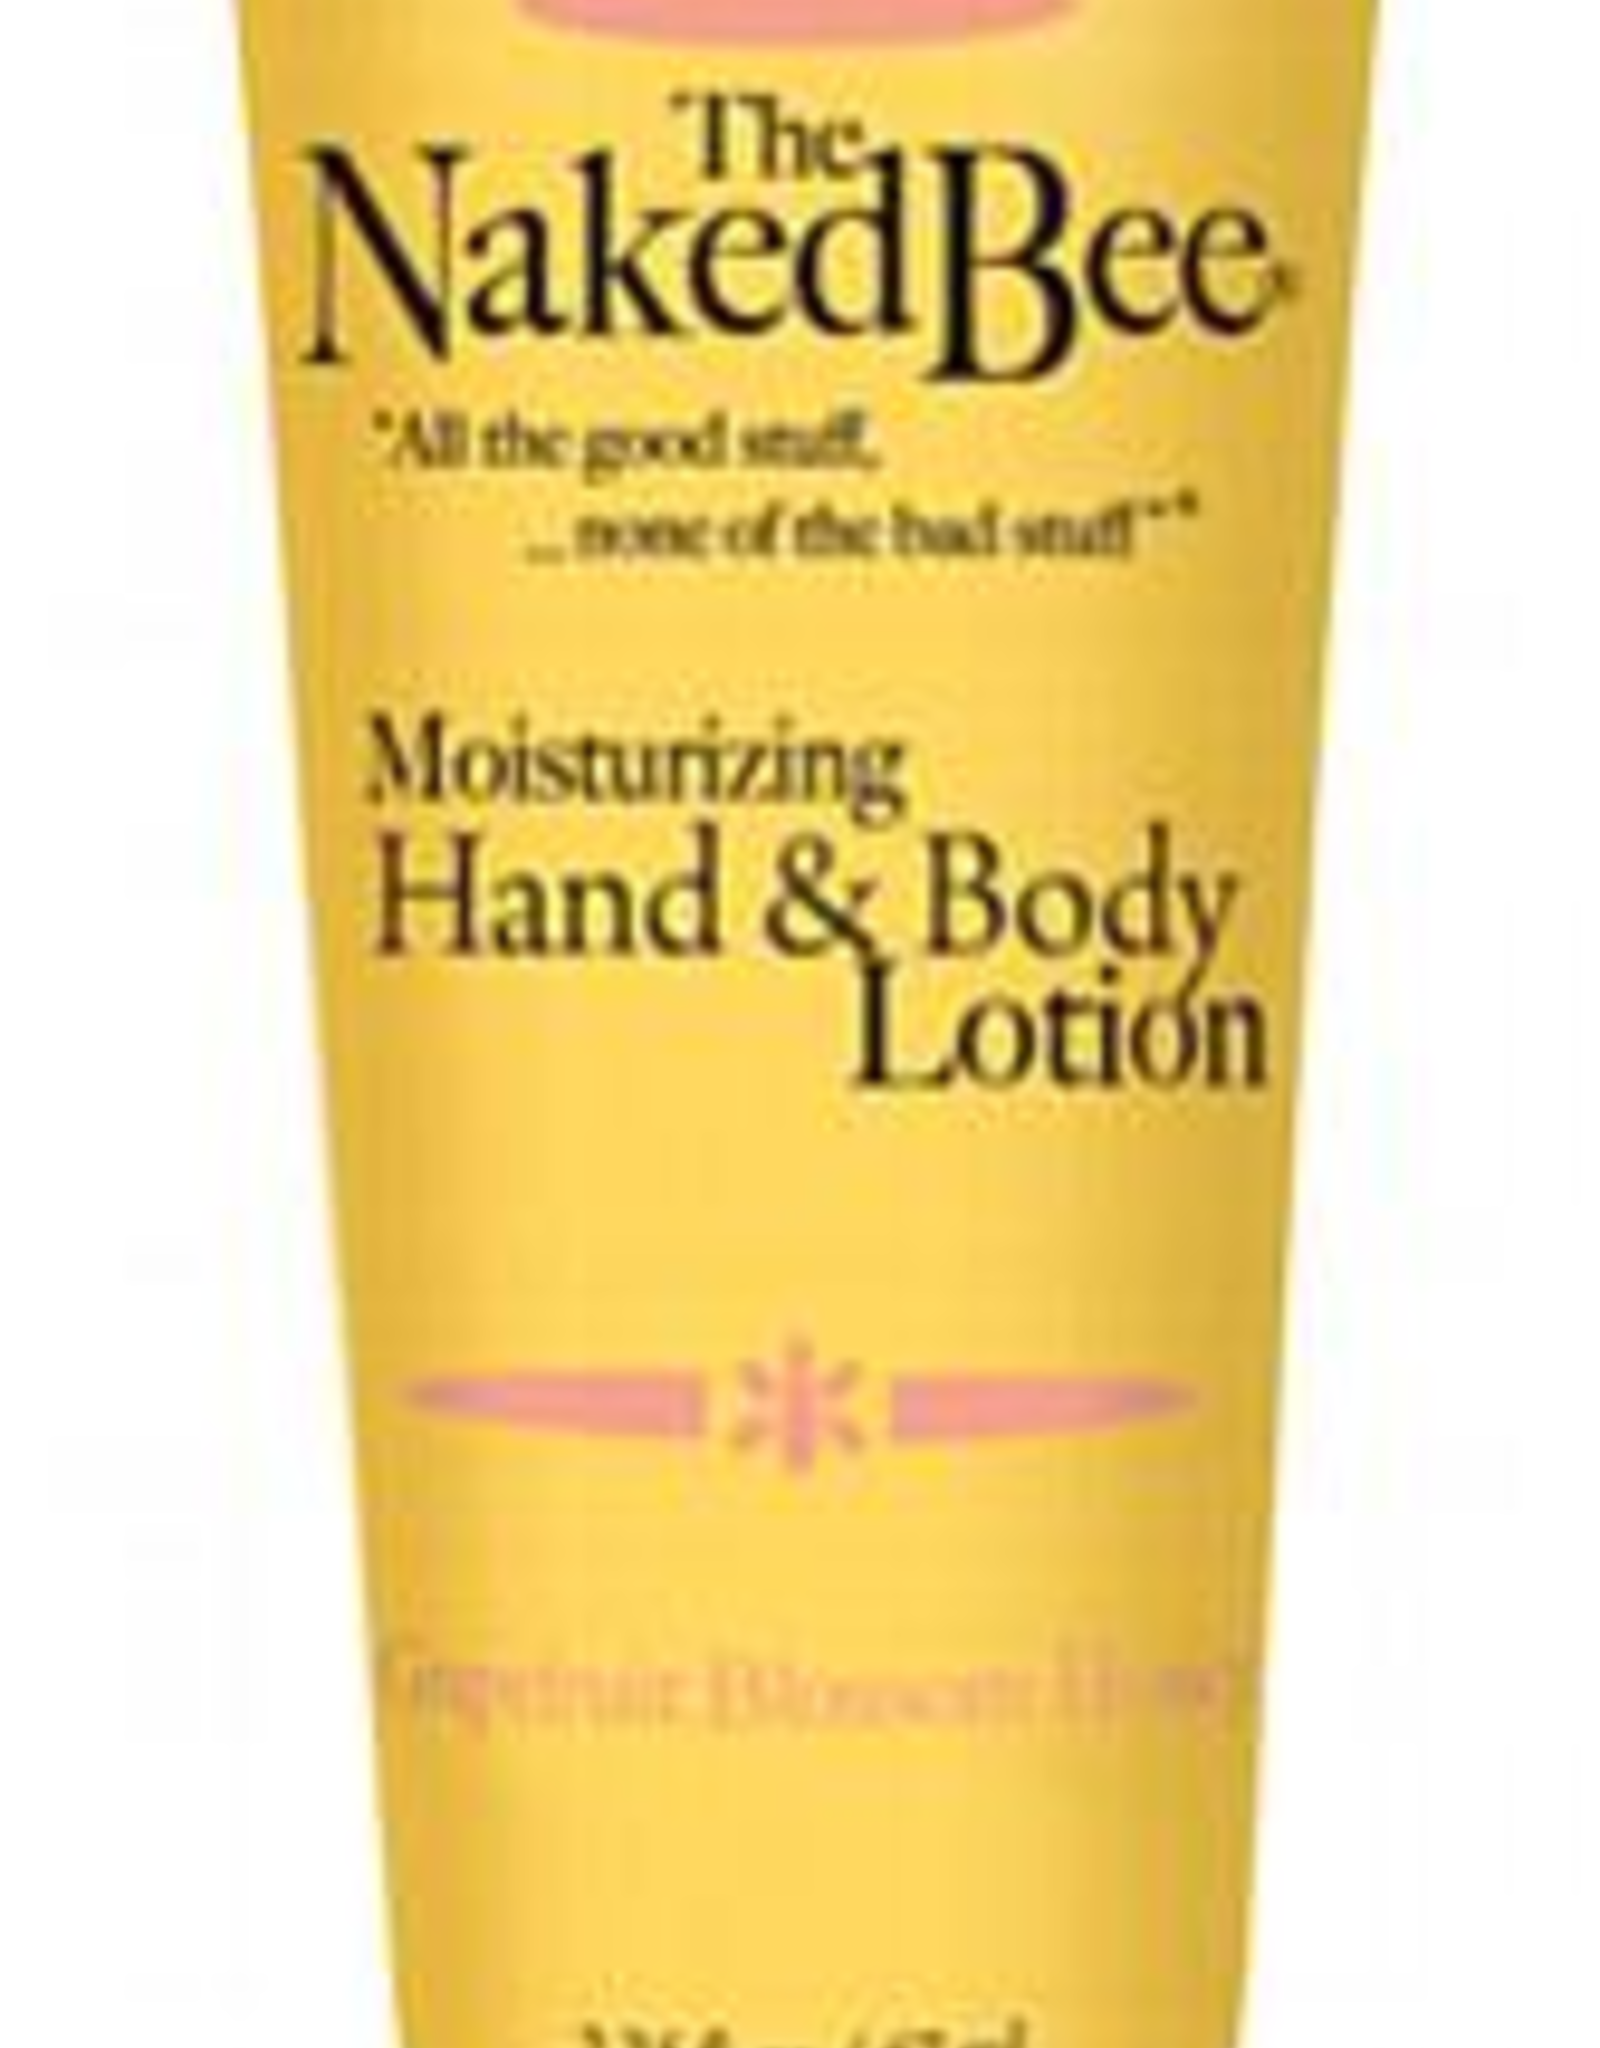 NAKED BEE The Naked Bee Moisturizing Hand & Body Lotion